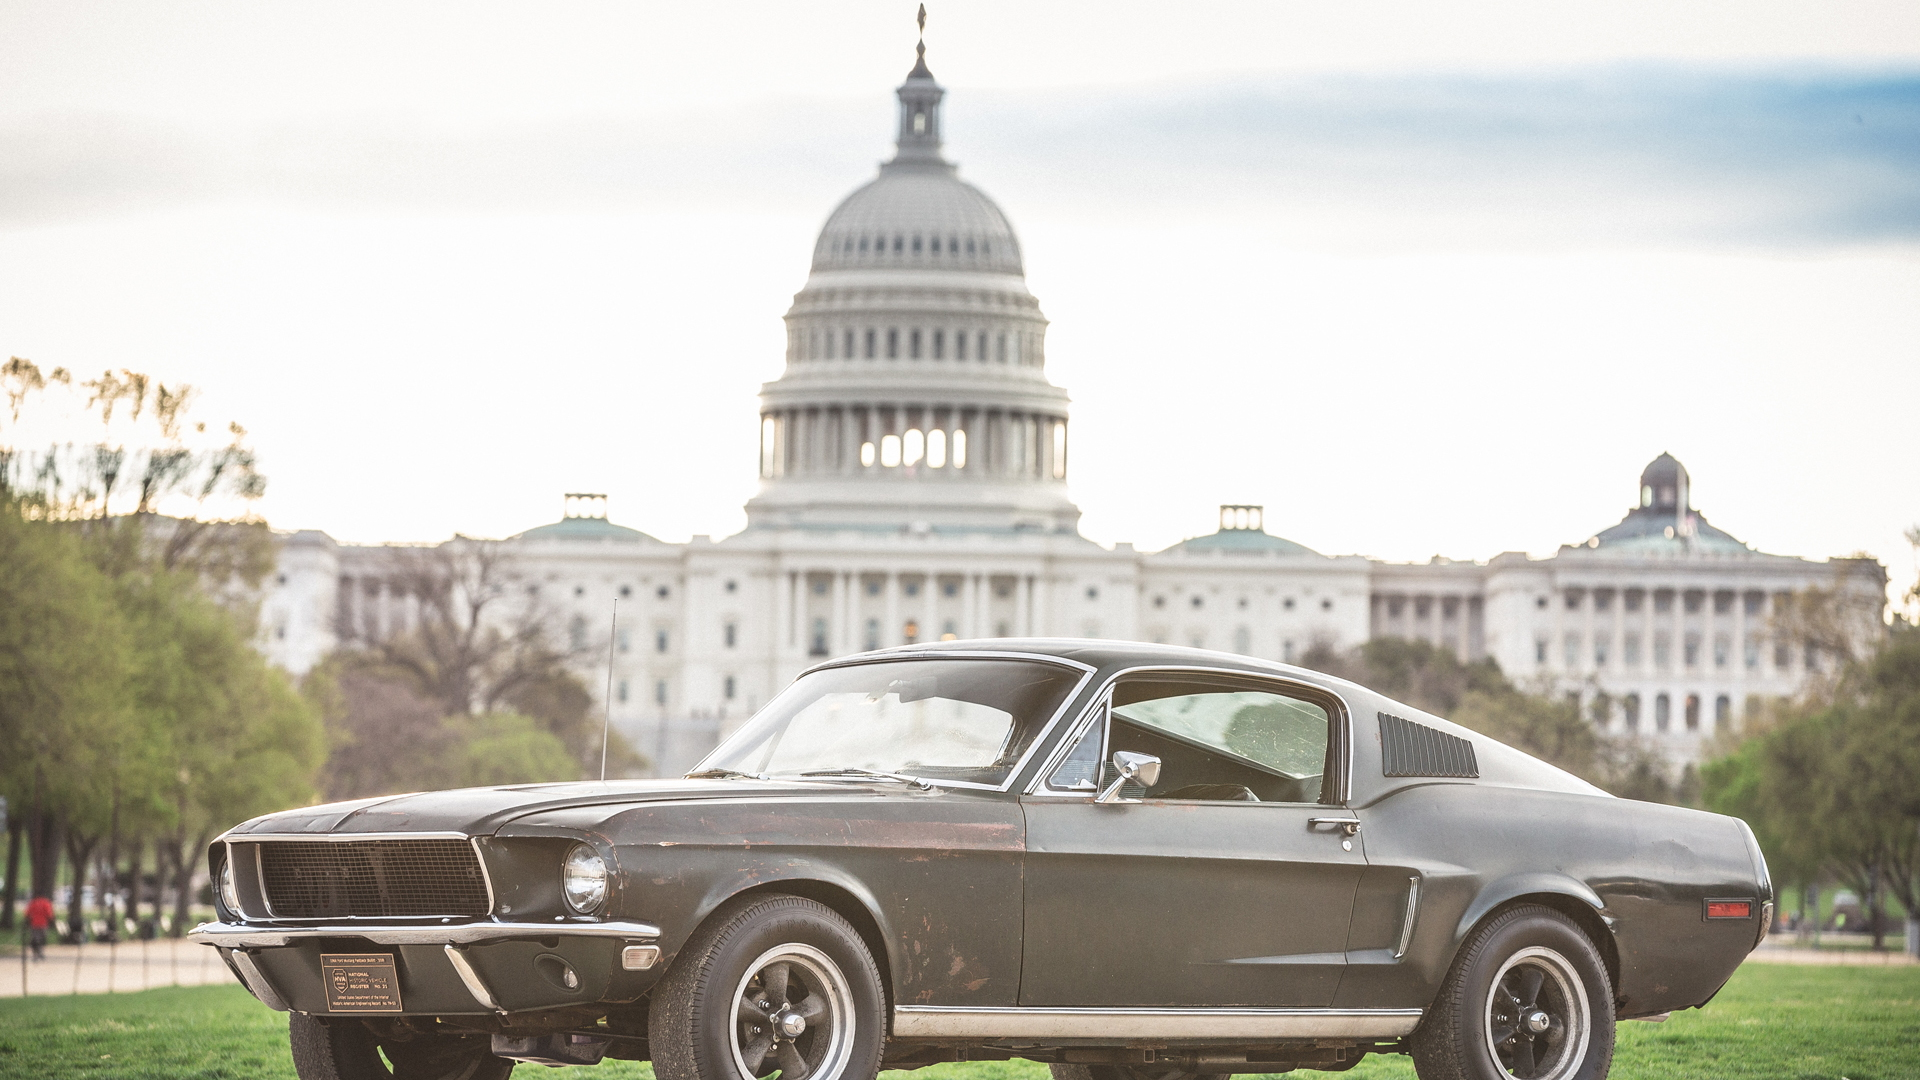 Original 1968 Ford Mustang Bullitt Movie Car Heading to Auction